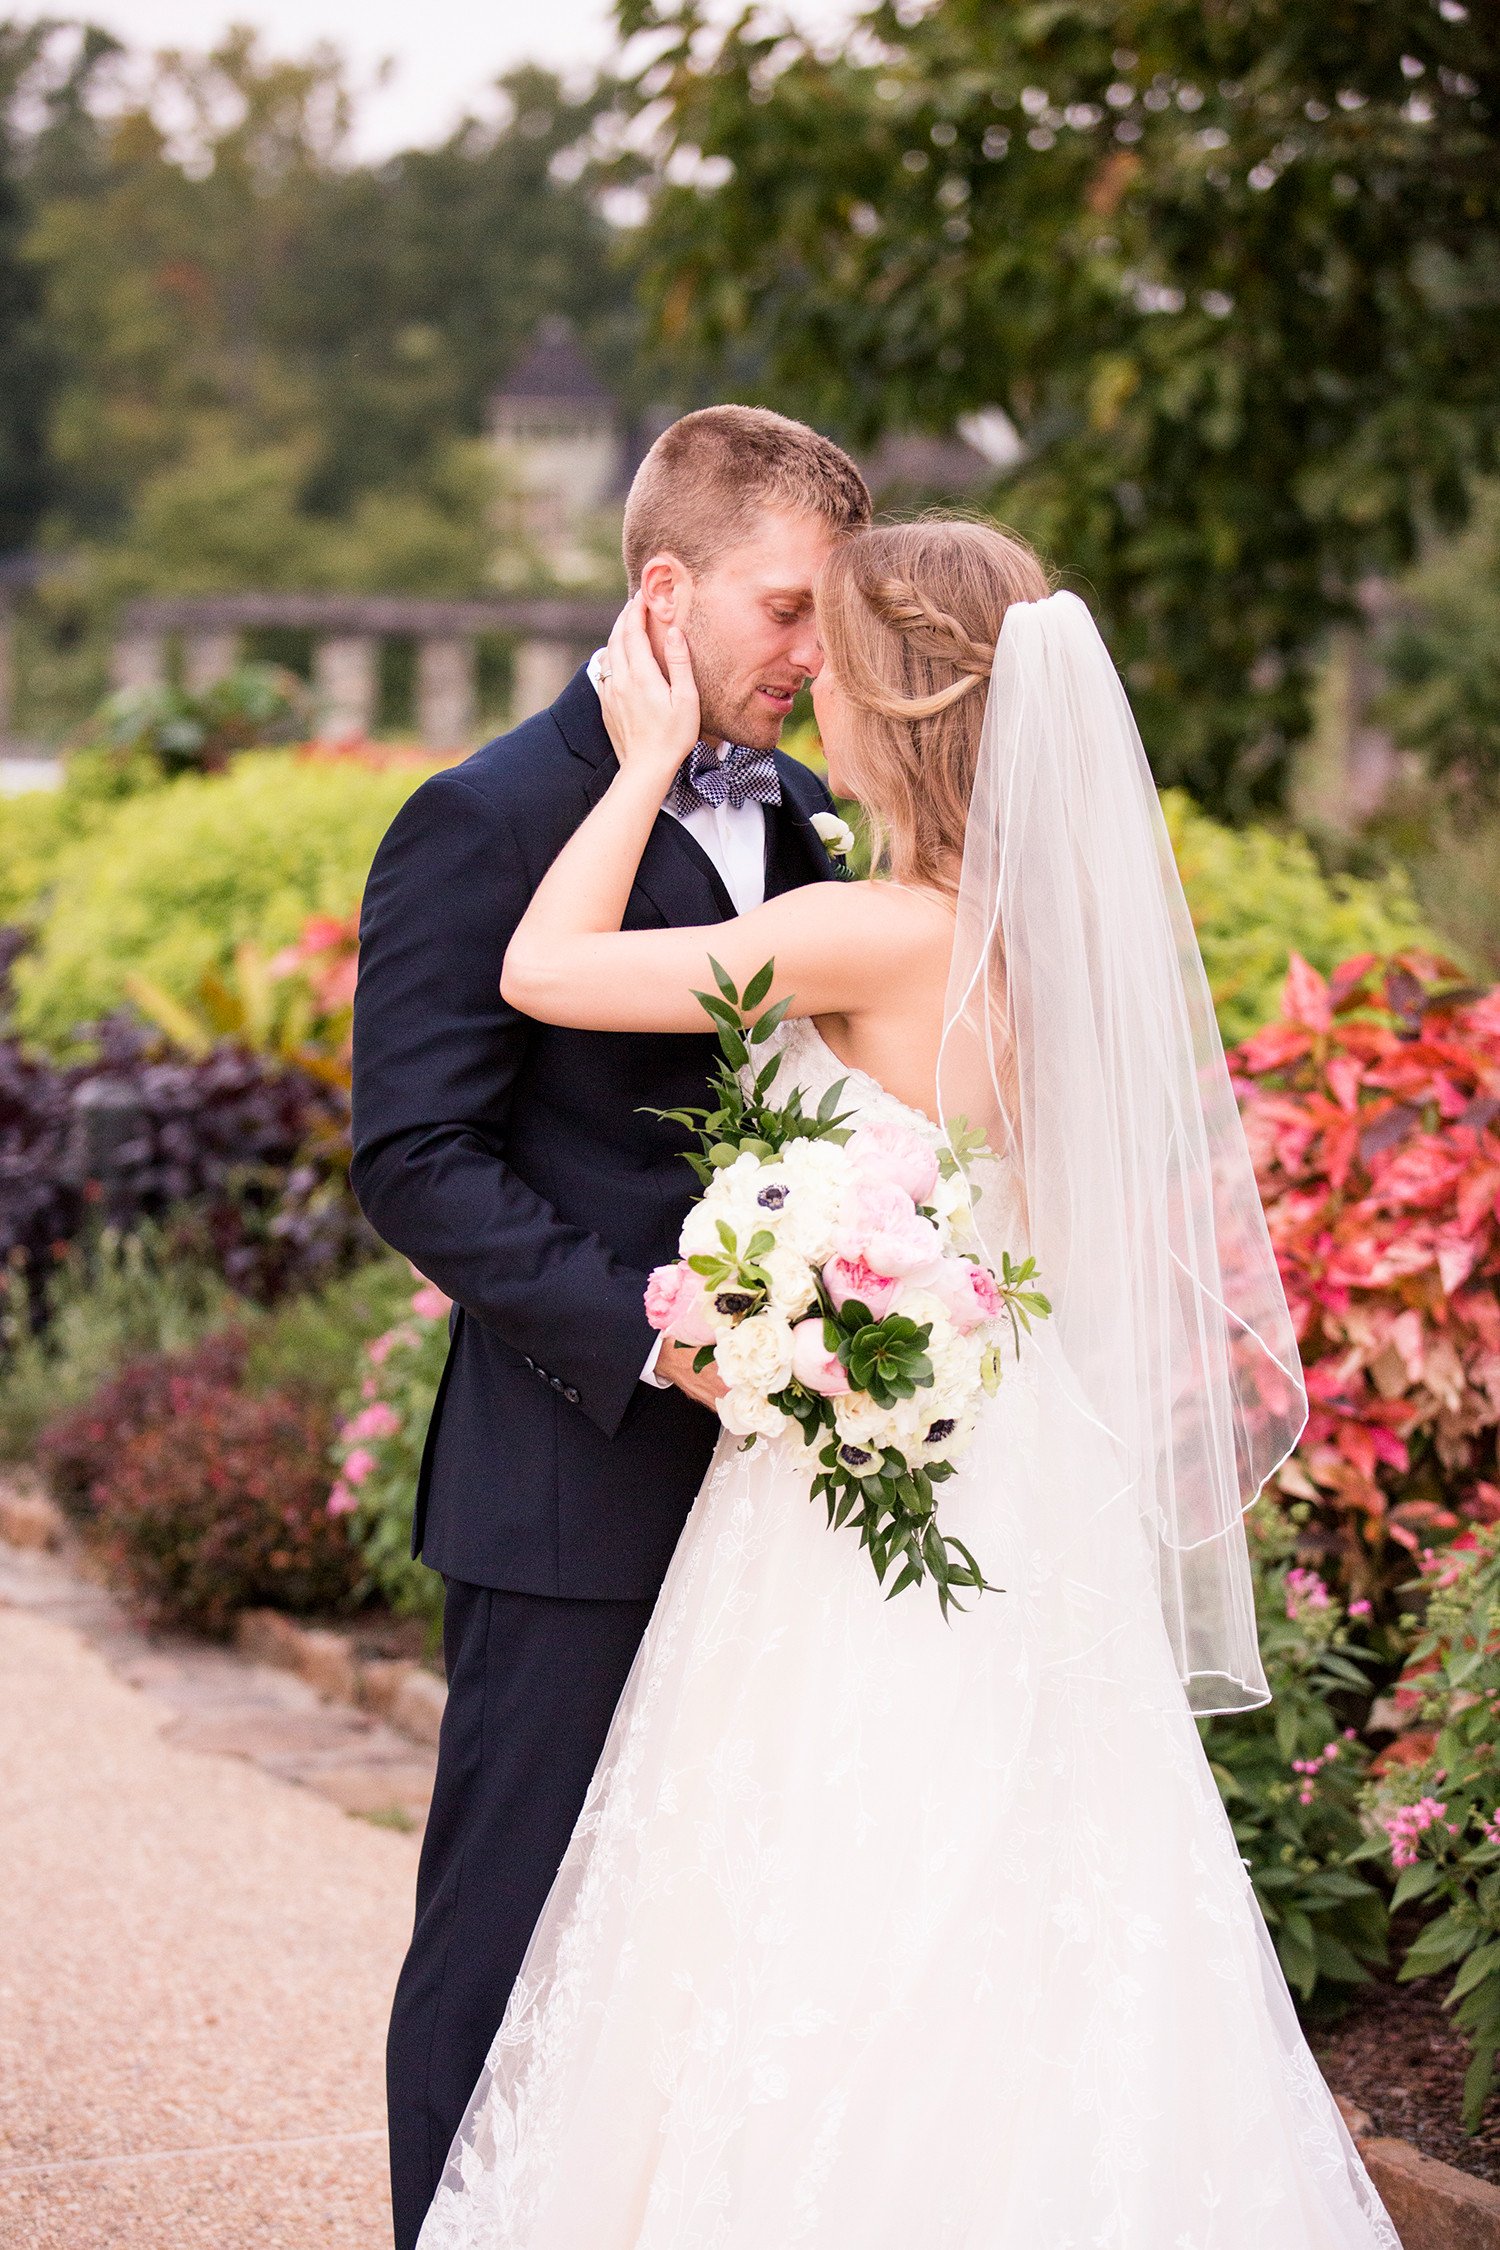 Danielle  Jimmys Garden Wedding - Image Property of www.j-dphoto.com